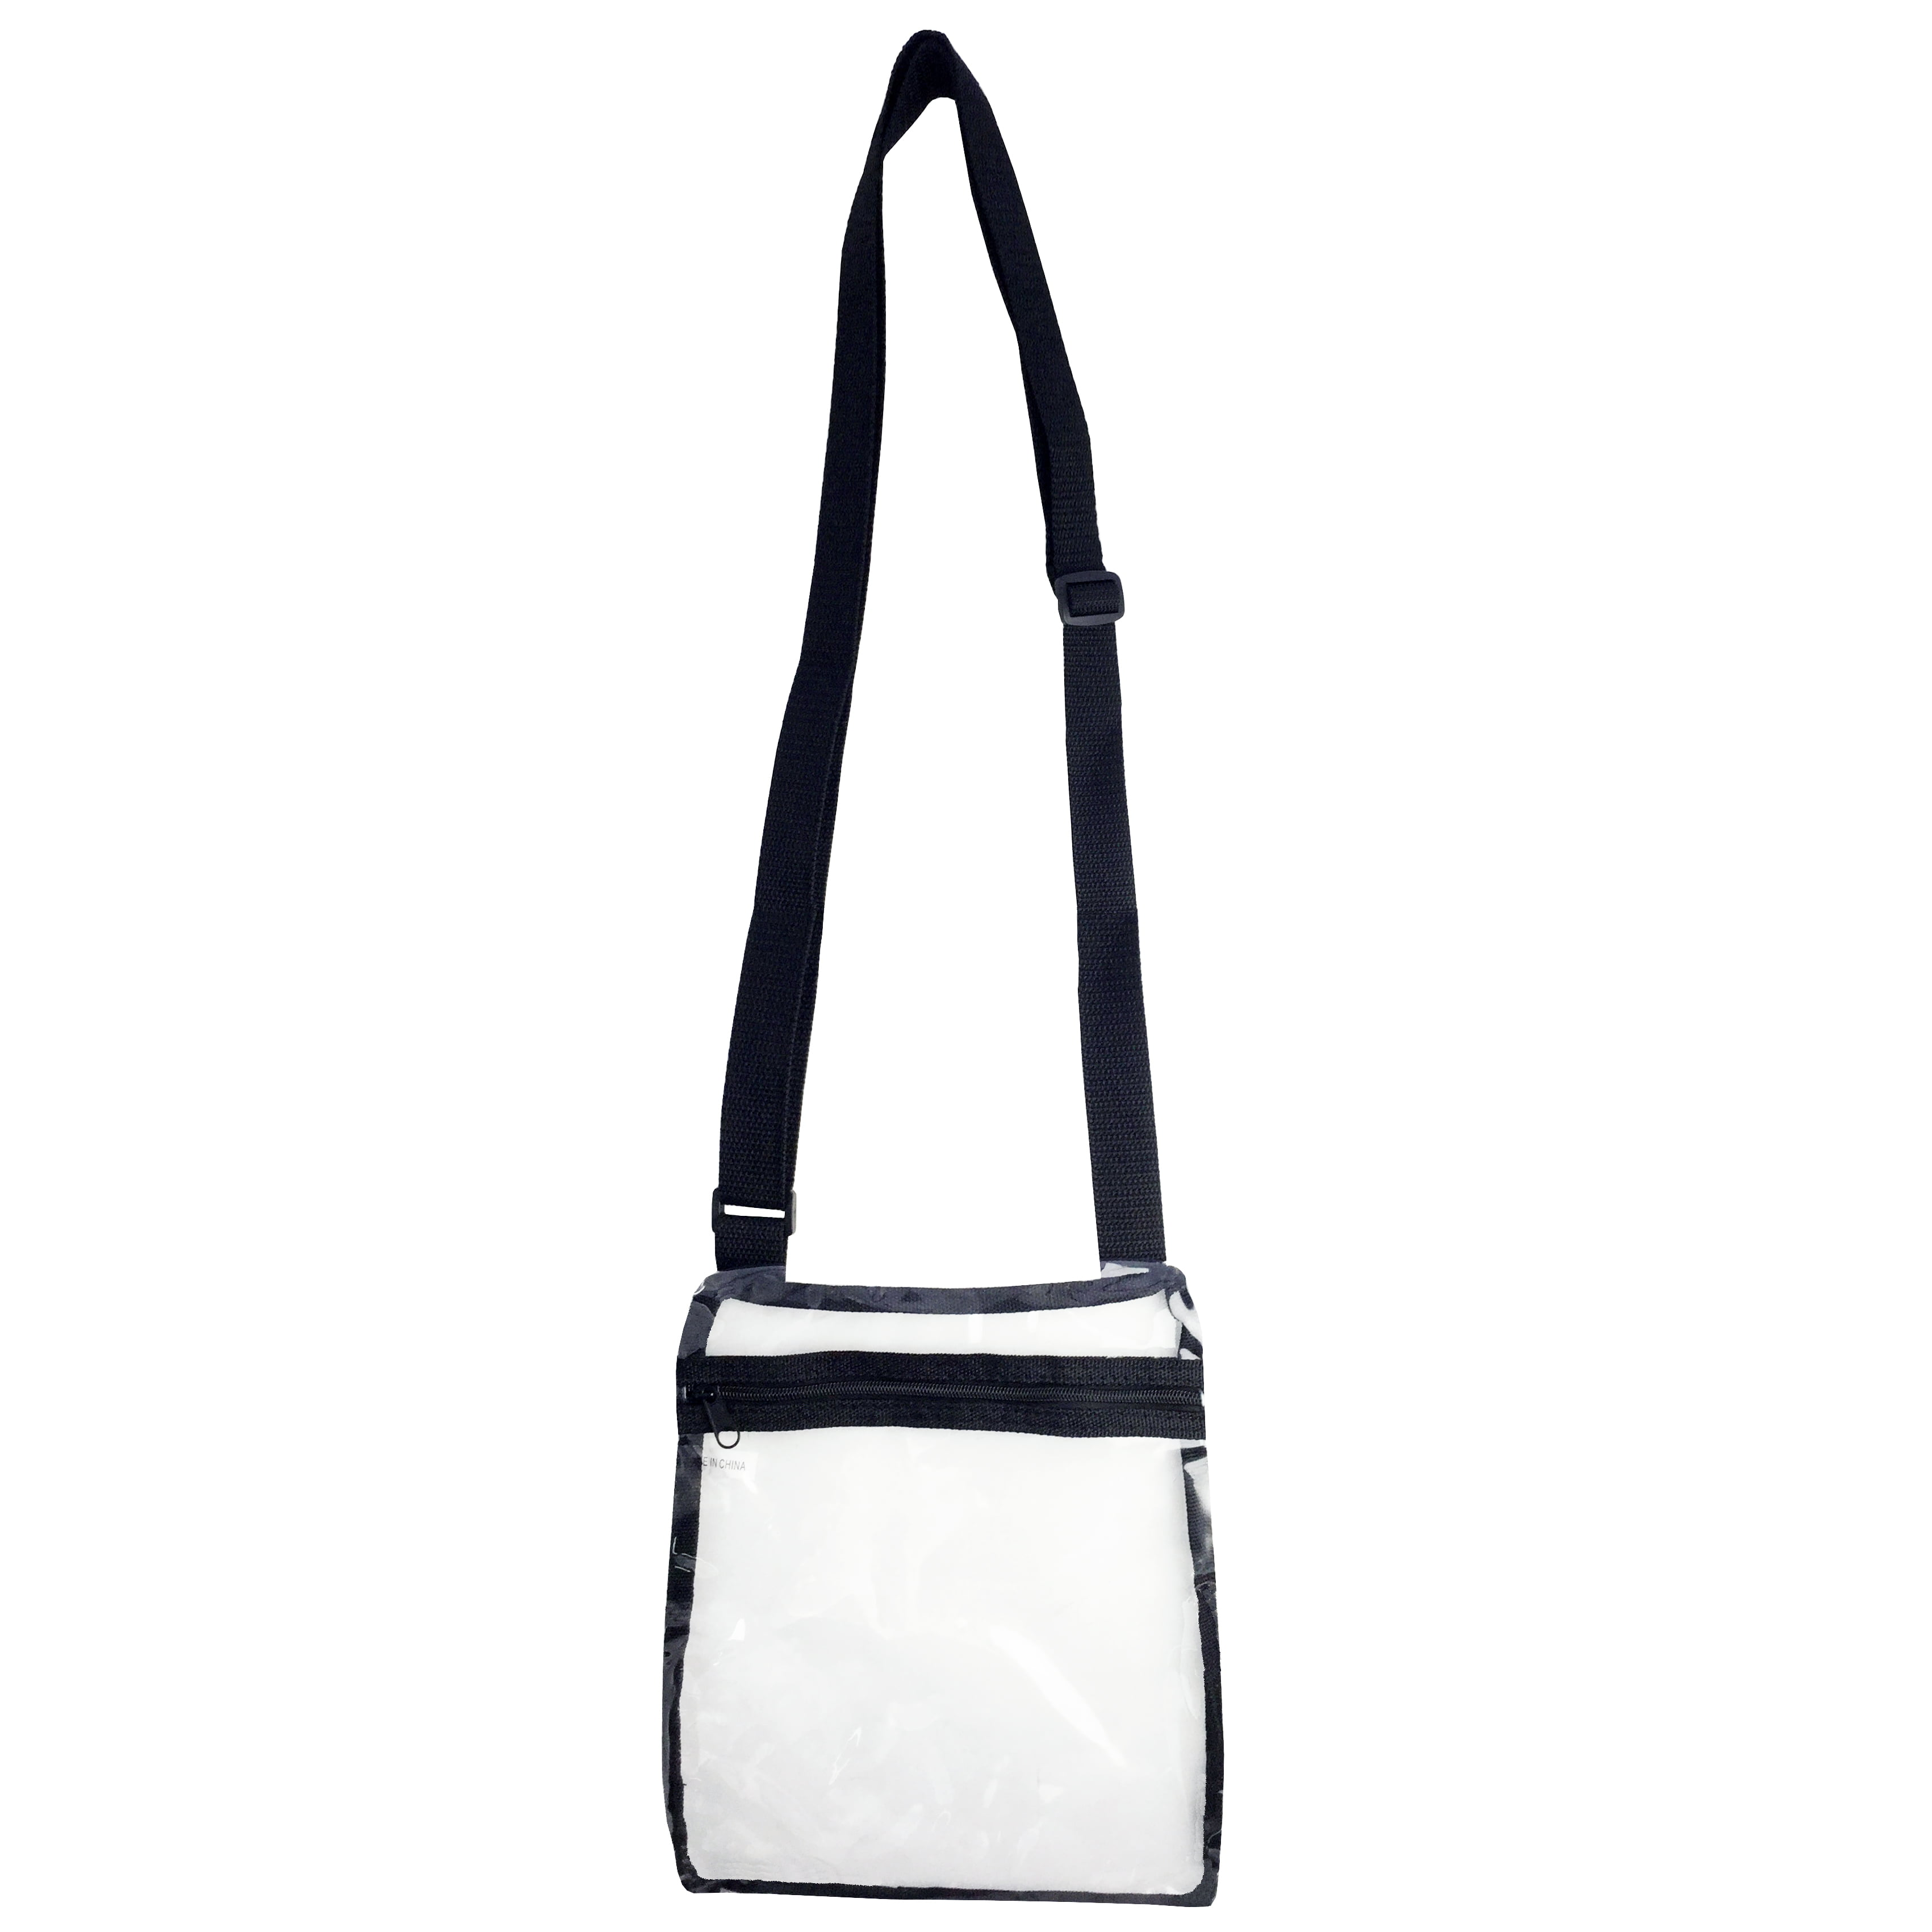 67d4d914eb37 Clear Cross Body Bag See-Thru Jelly Messenger Purse Stadium Concert  Transparent